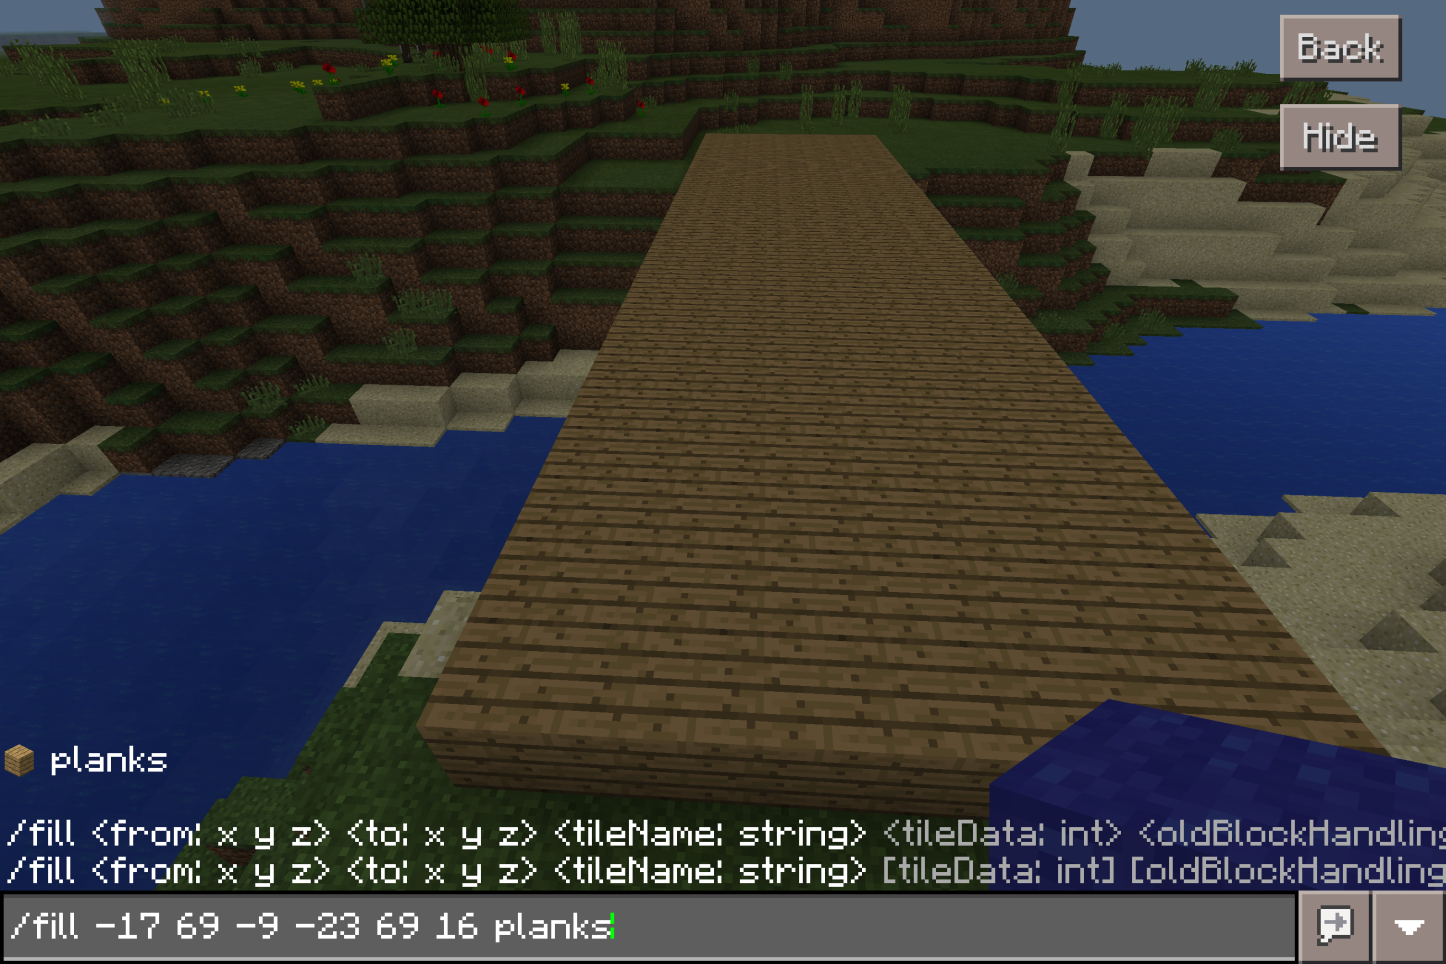 Using Basic /fill Commands in Minecraft: Education Edition